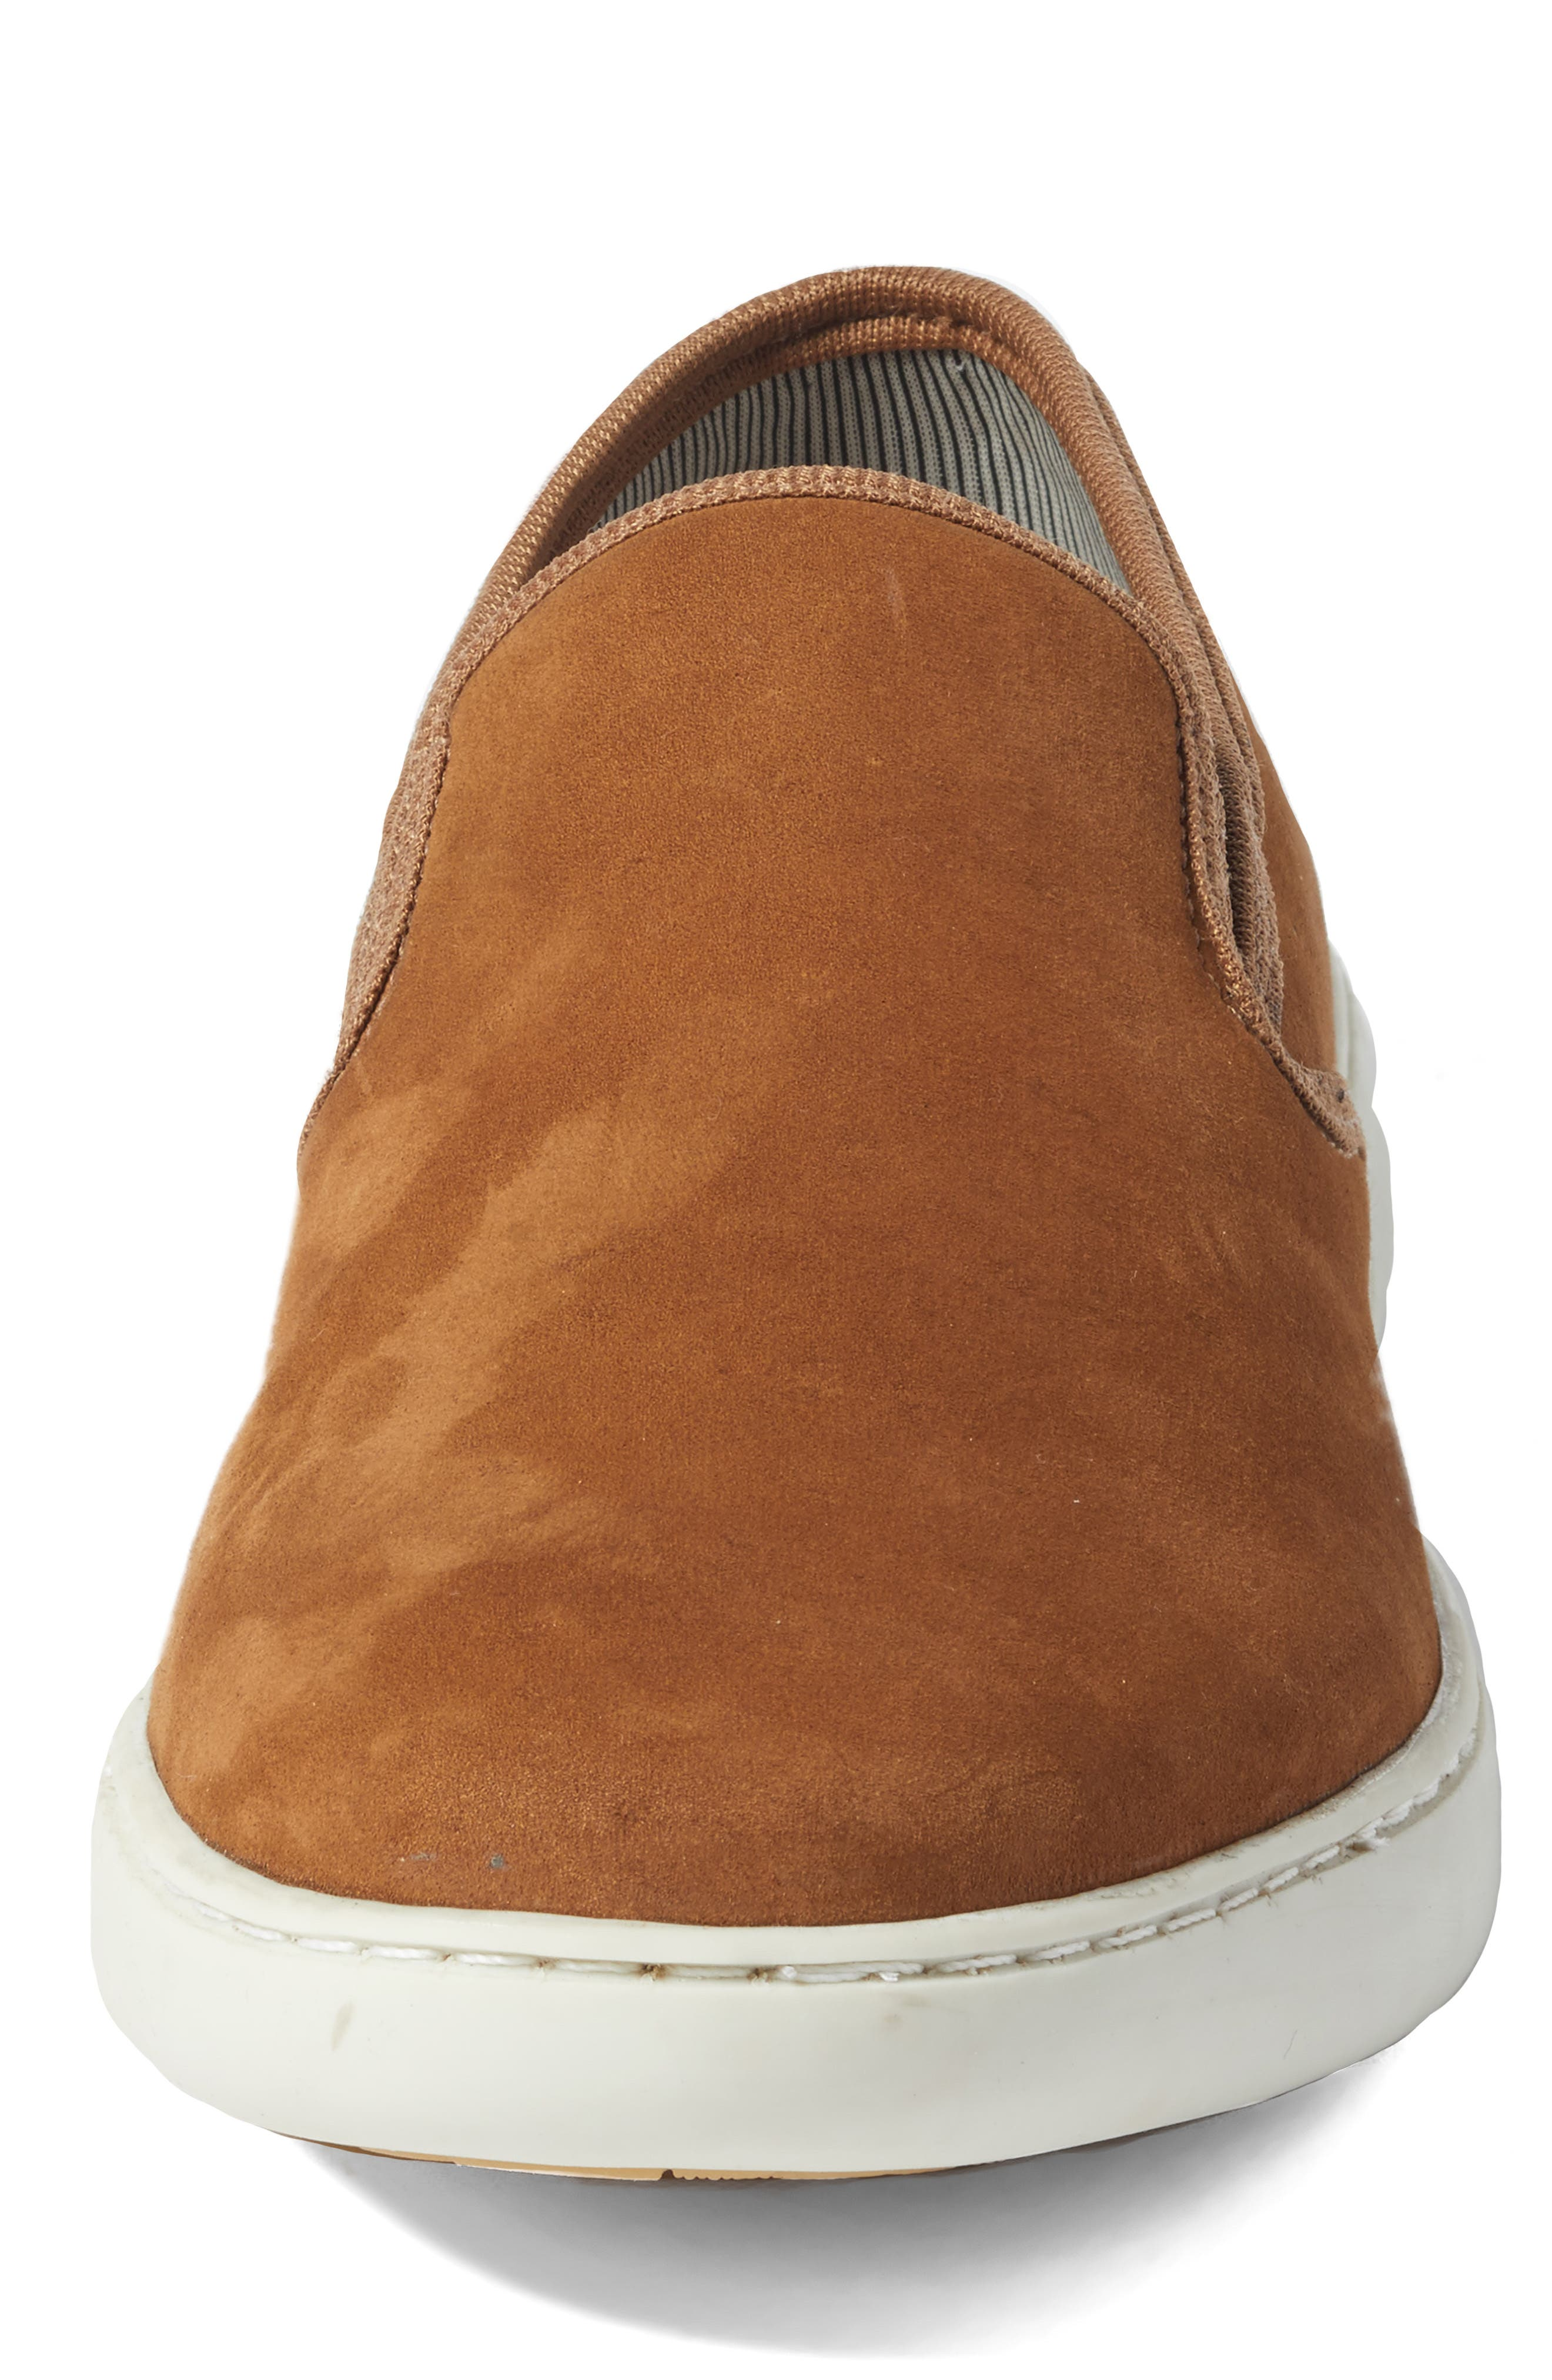 Malibu Slip-on,                             Alternate thumbnail 5, color,                             Tan Nubuck